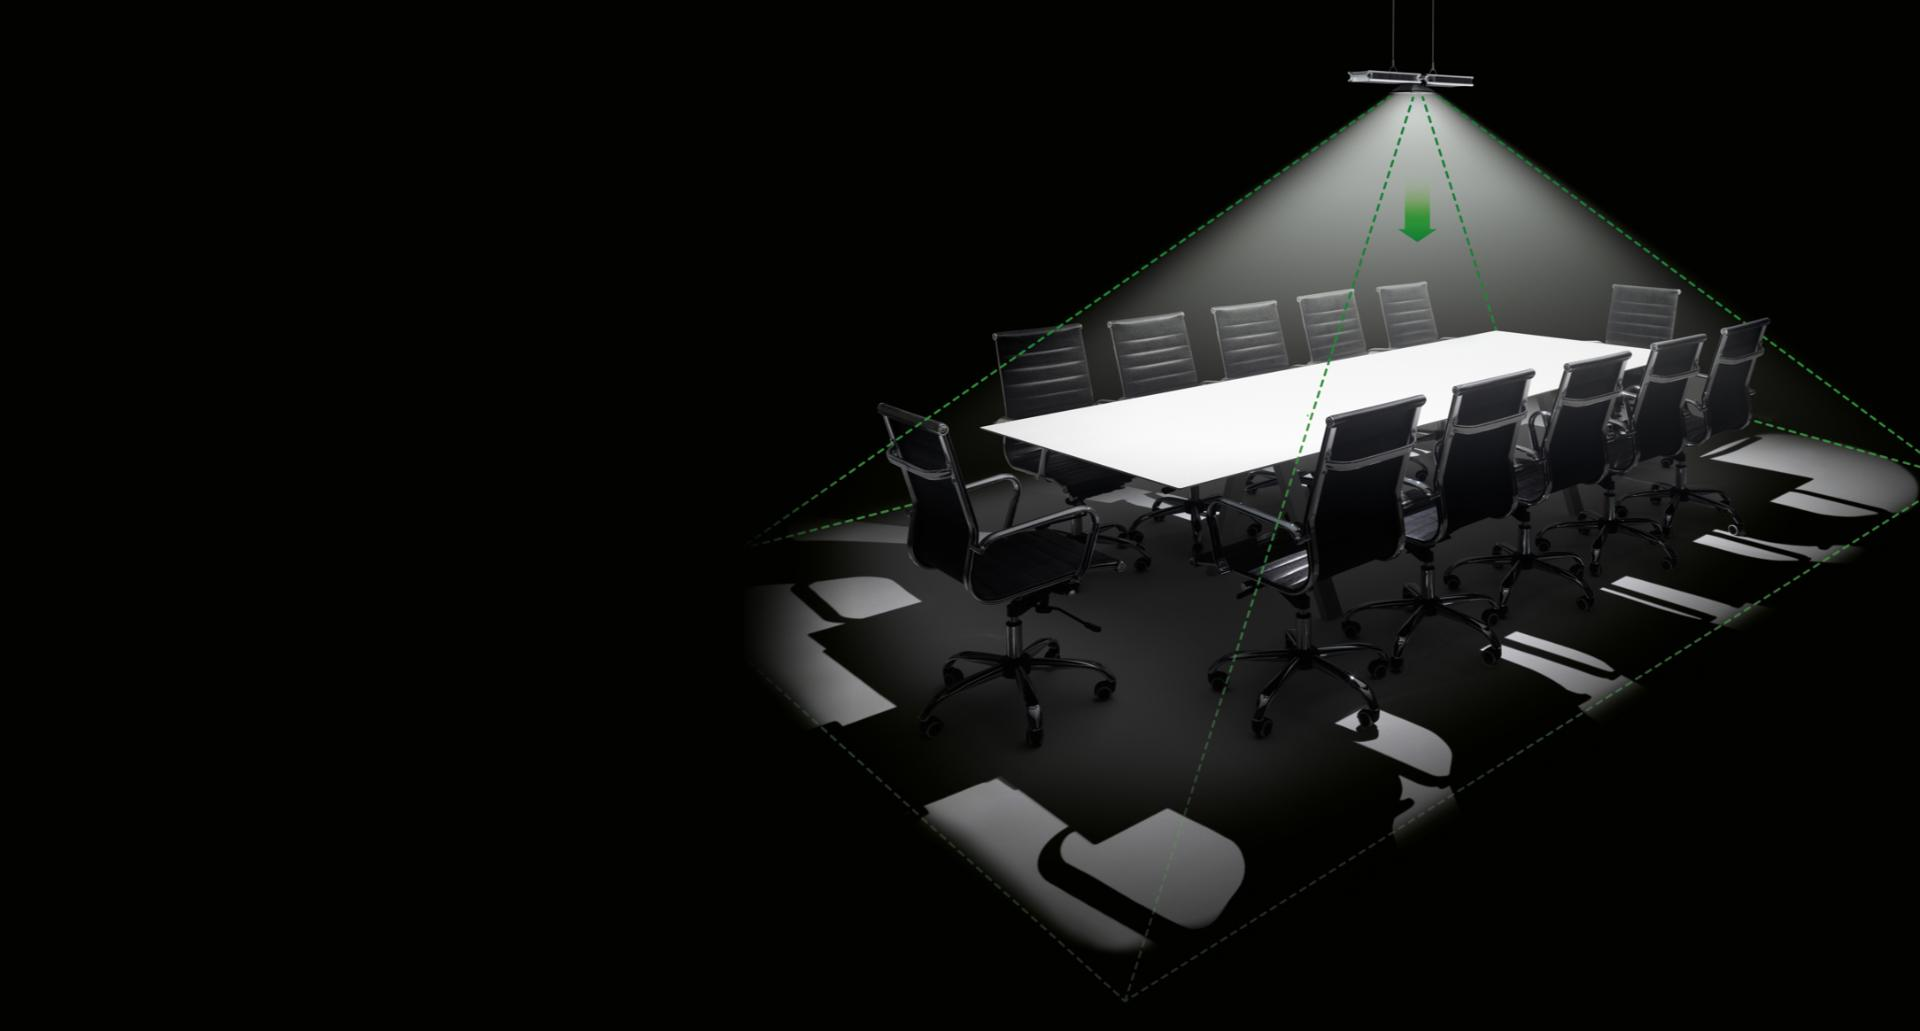 Dyson Cu-Beam Down light with targeted pyramid of light on boardroom table